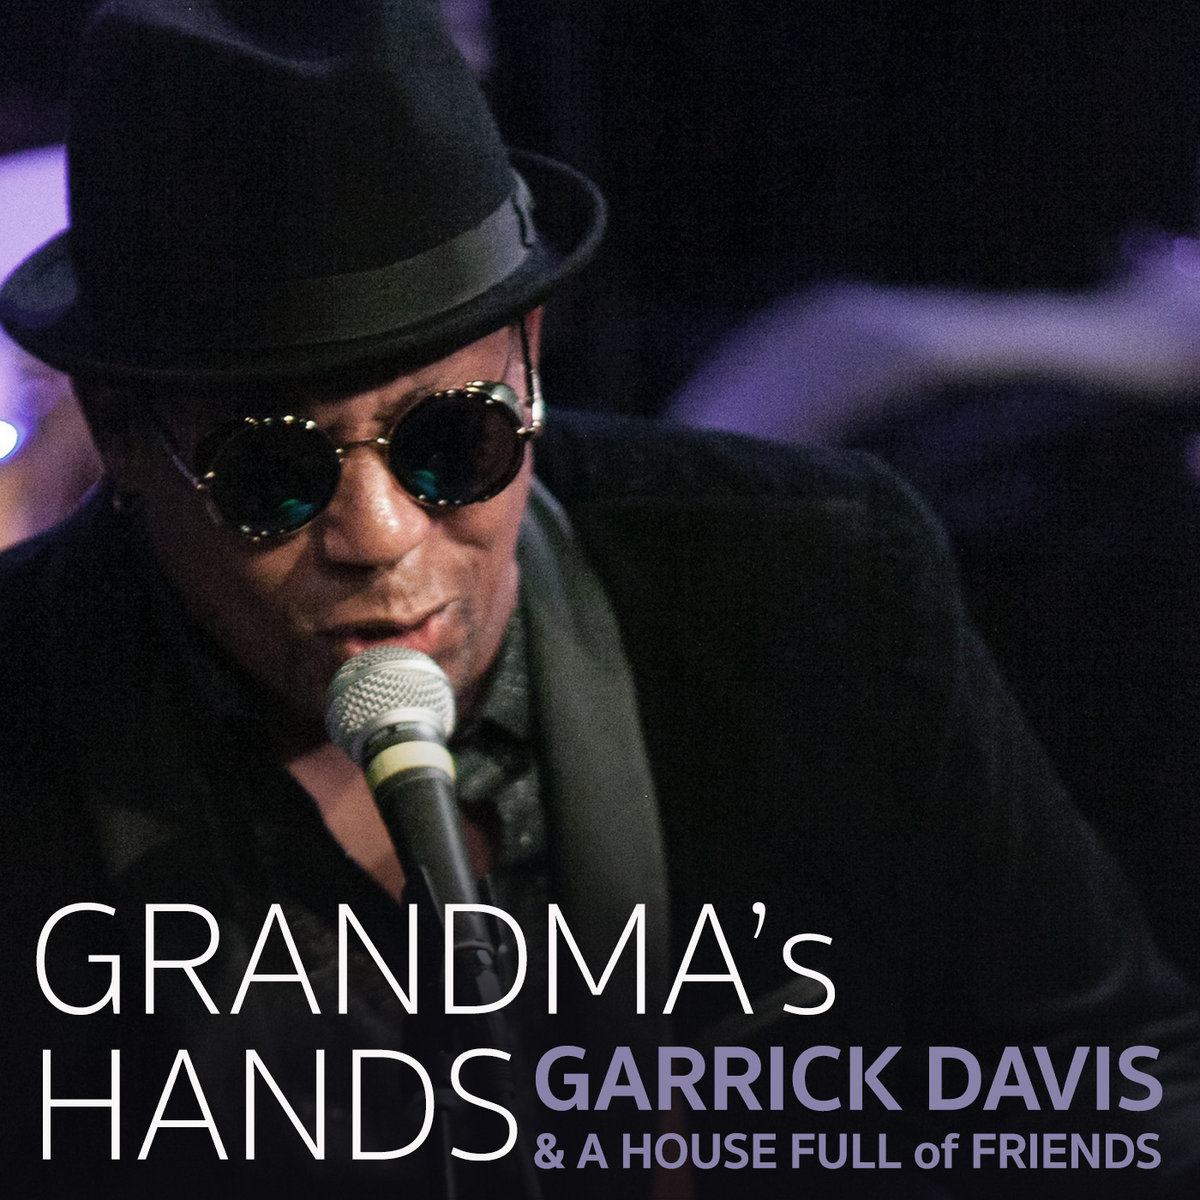 Grandma's Hands - LIVE(single) by Garrick Davis & A House Full of Friends